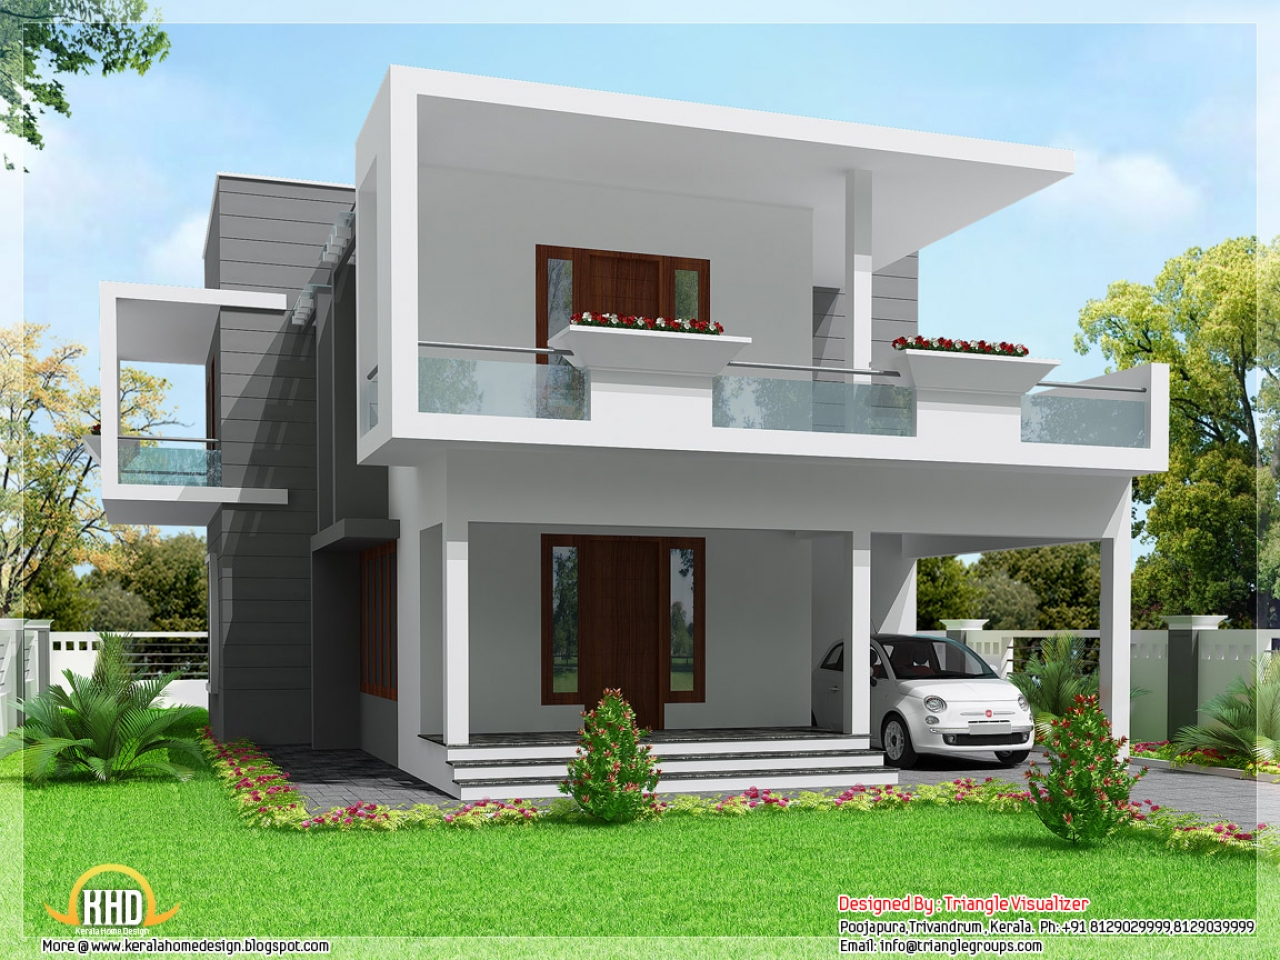 Affordable Modern House Plans Eco Friendly Small House Plans Small Eco House Plans